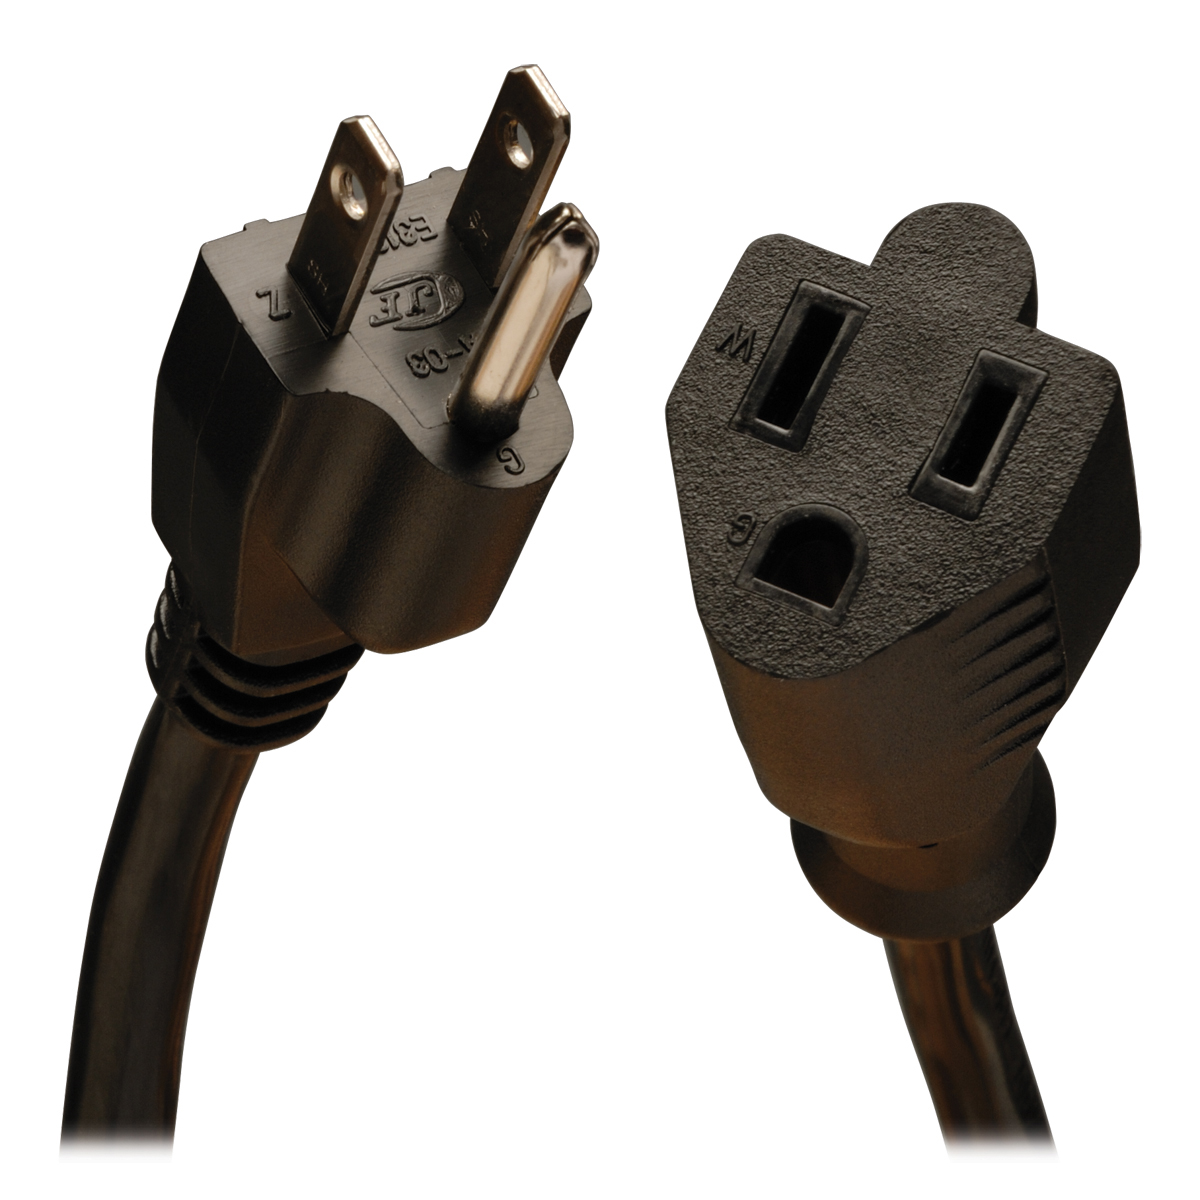 Tripp Lite P024-003 3ft Heavy Duty Power Ext Cord Cabl 14awg 15a 120v 5-15r To 5-15p 3